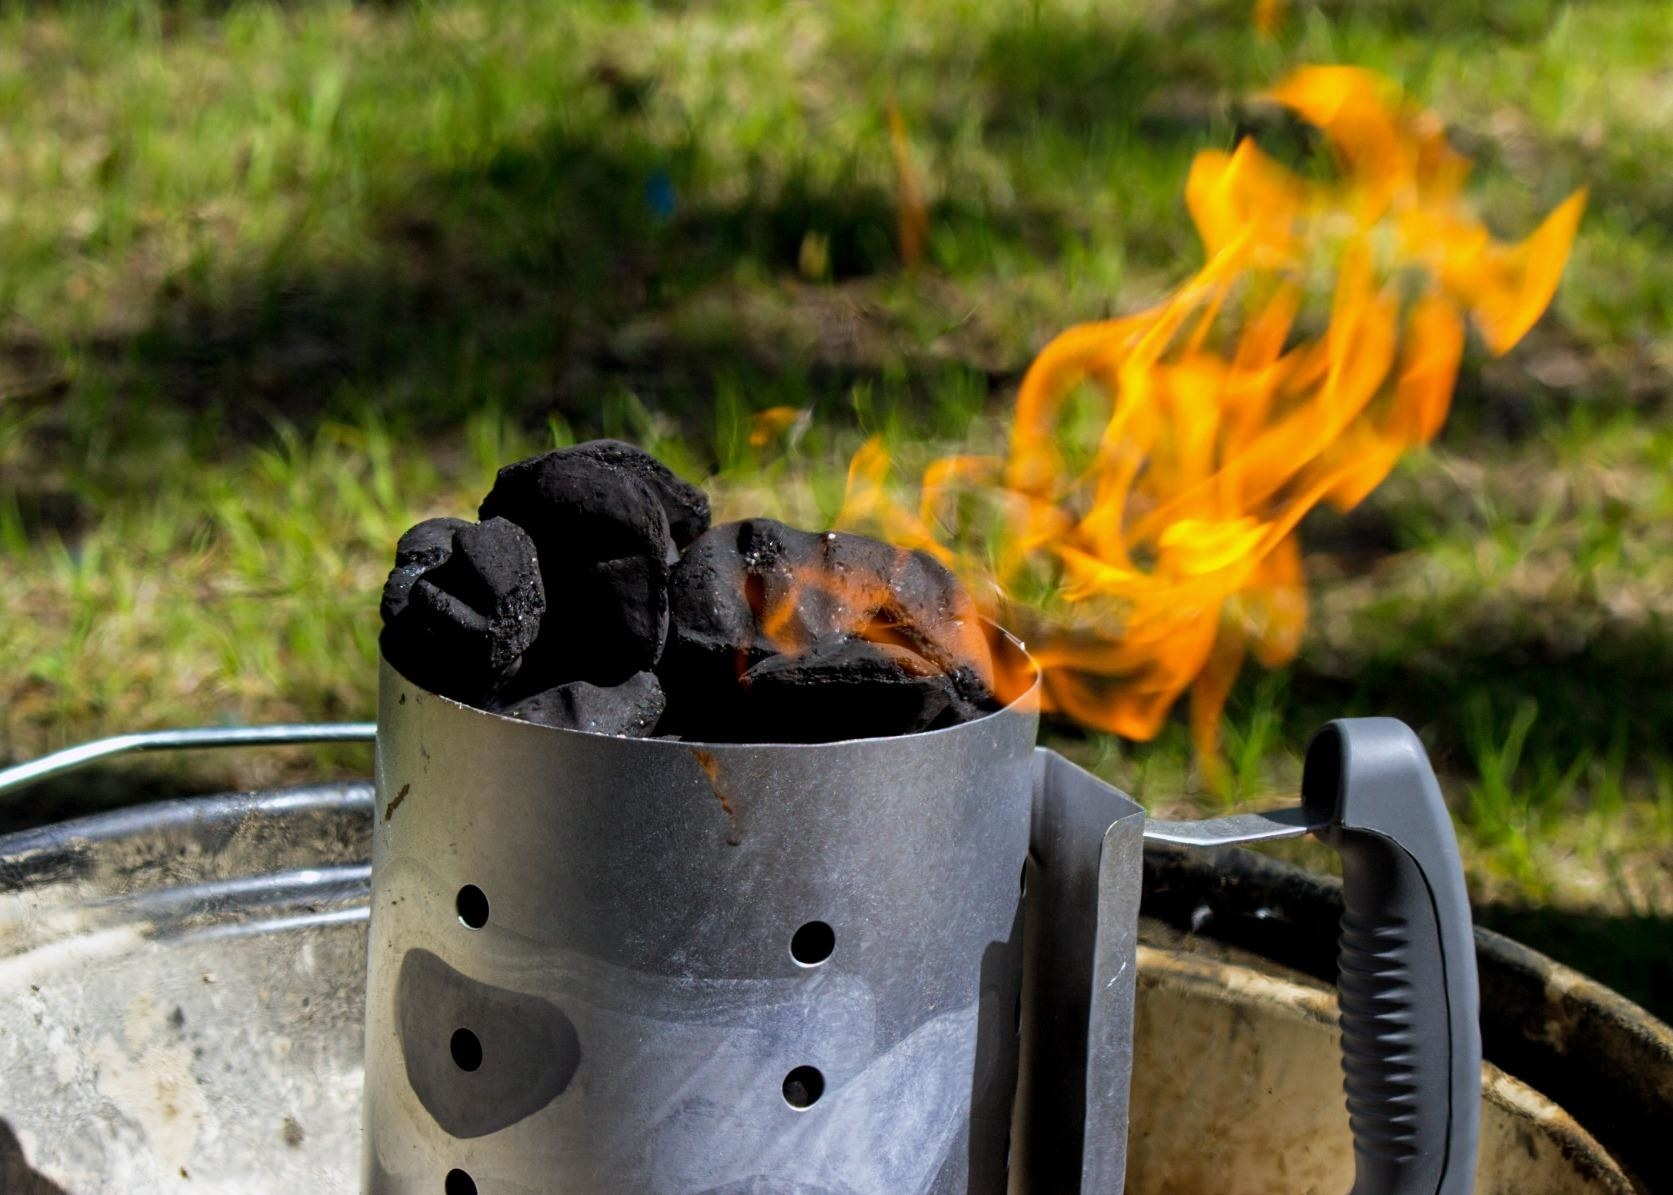 A reviewer's photo of the chimney starter in use with flames shooting from the charcoal